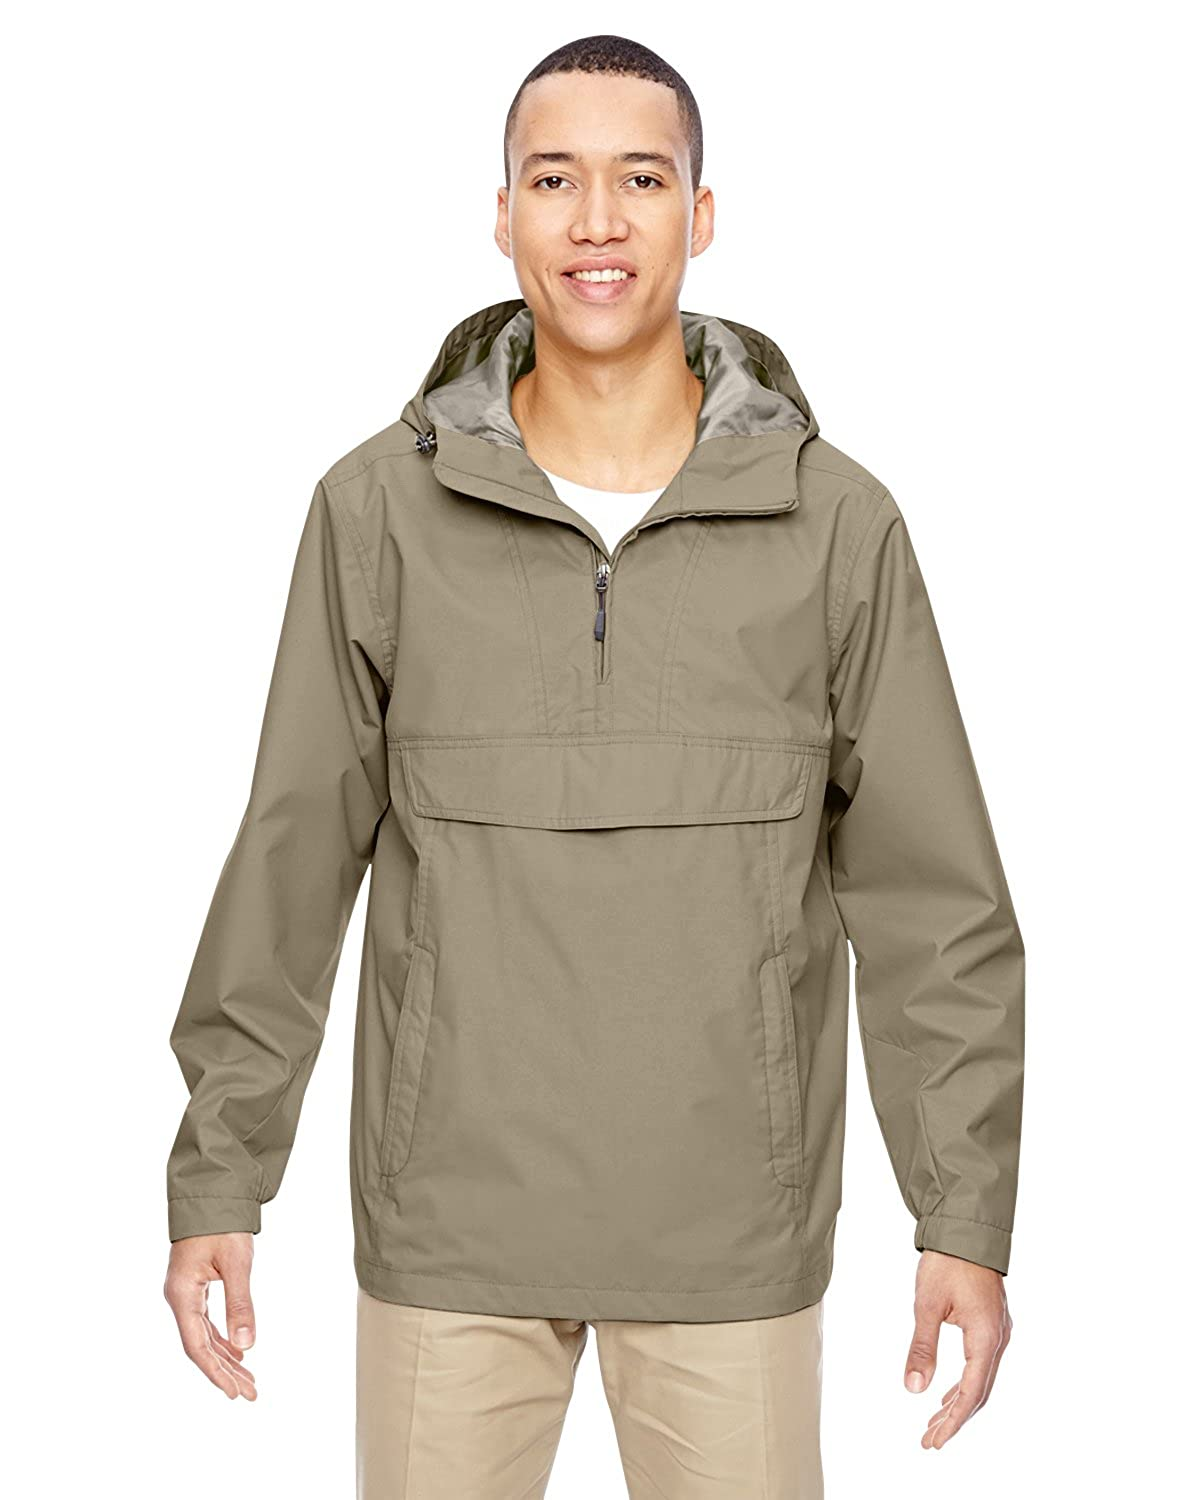 Men's Excursion Intrepid Lightweight Anorak STONE 019 3XL